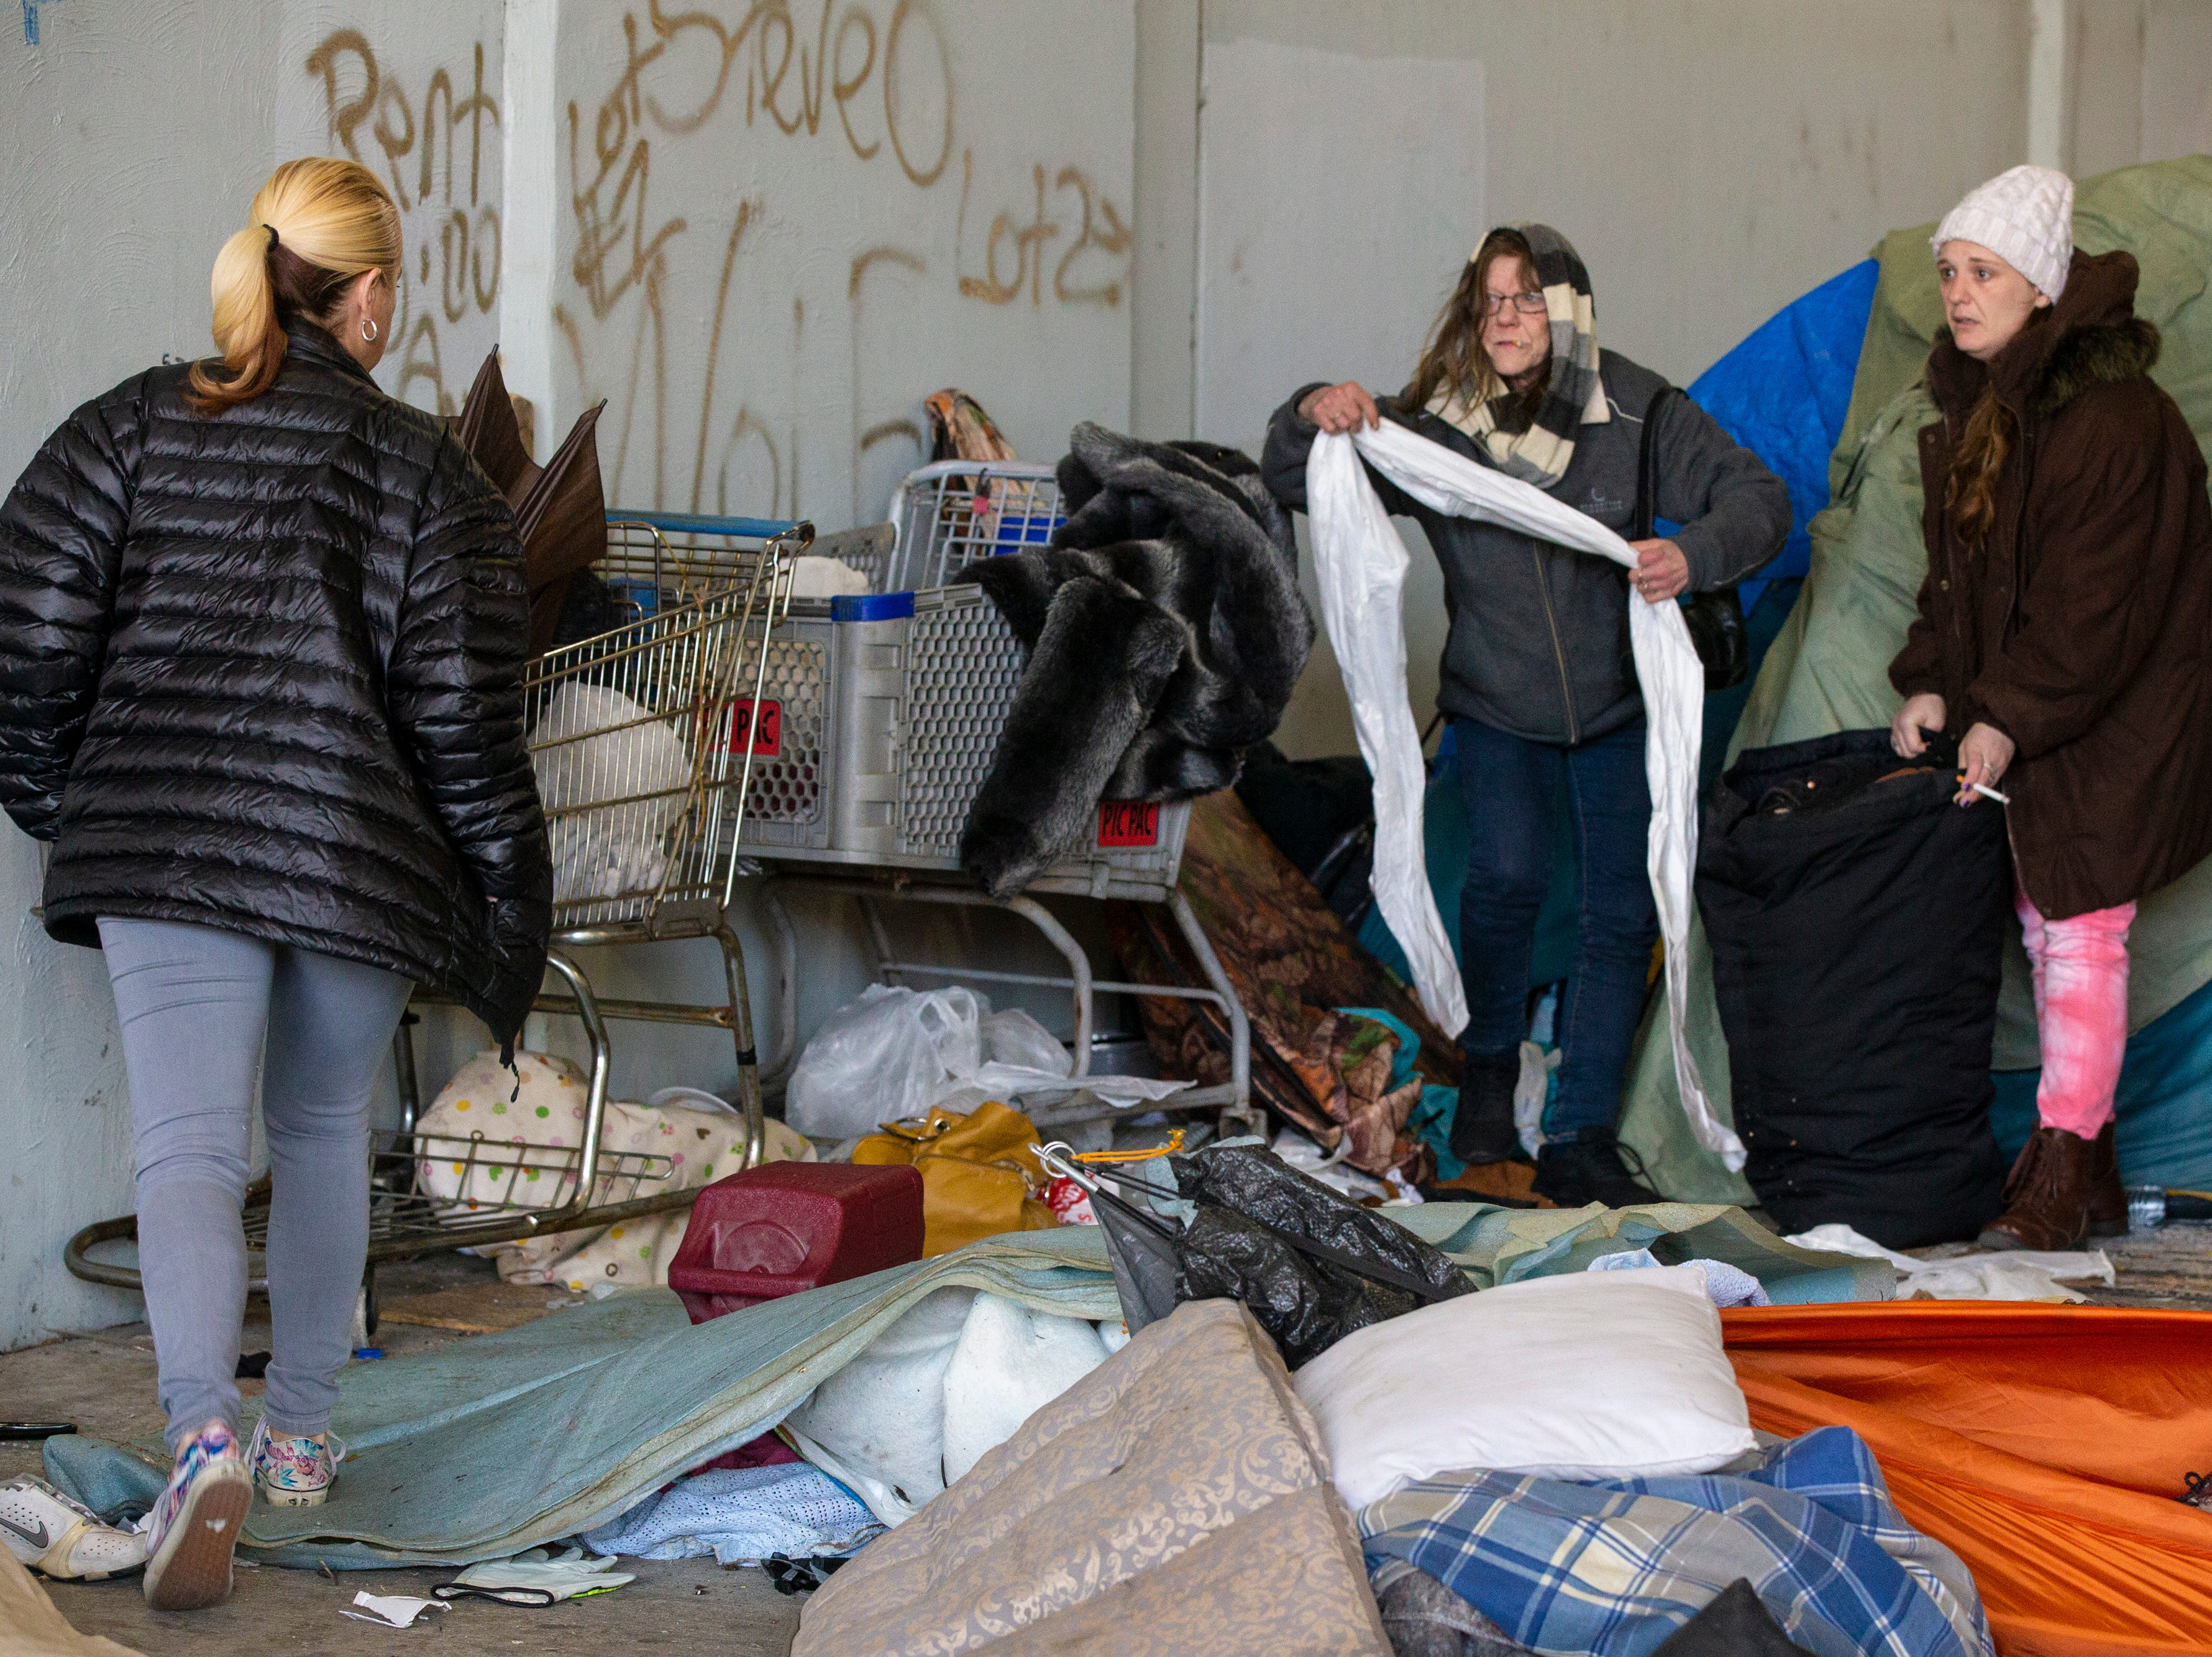 Homeless residents work on packing their belongings as city crews cleaned out the homeless camp at the intersection of Jackson and Jefferson streets Monday morning. April 1, 2019